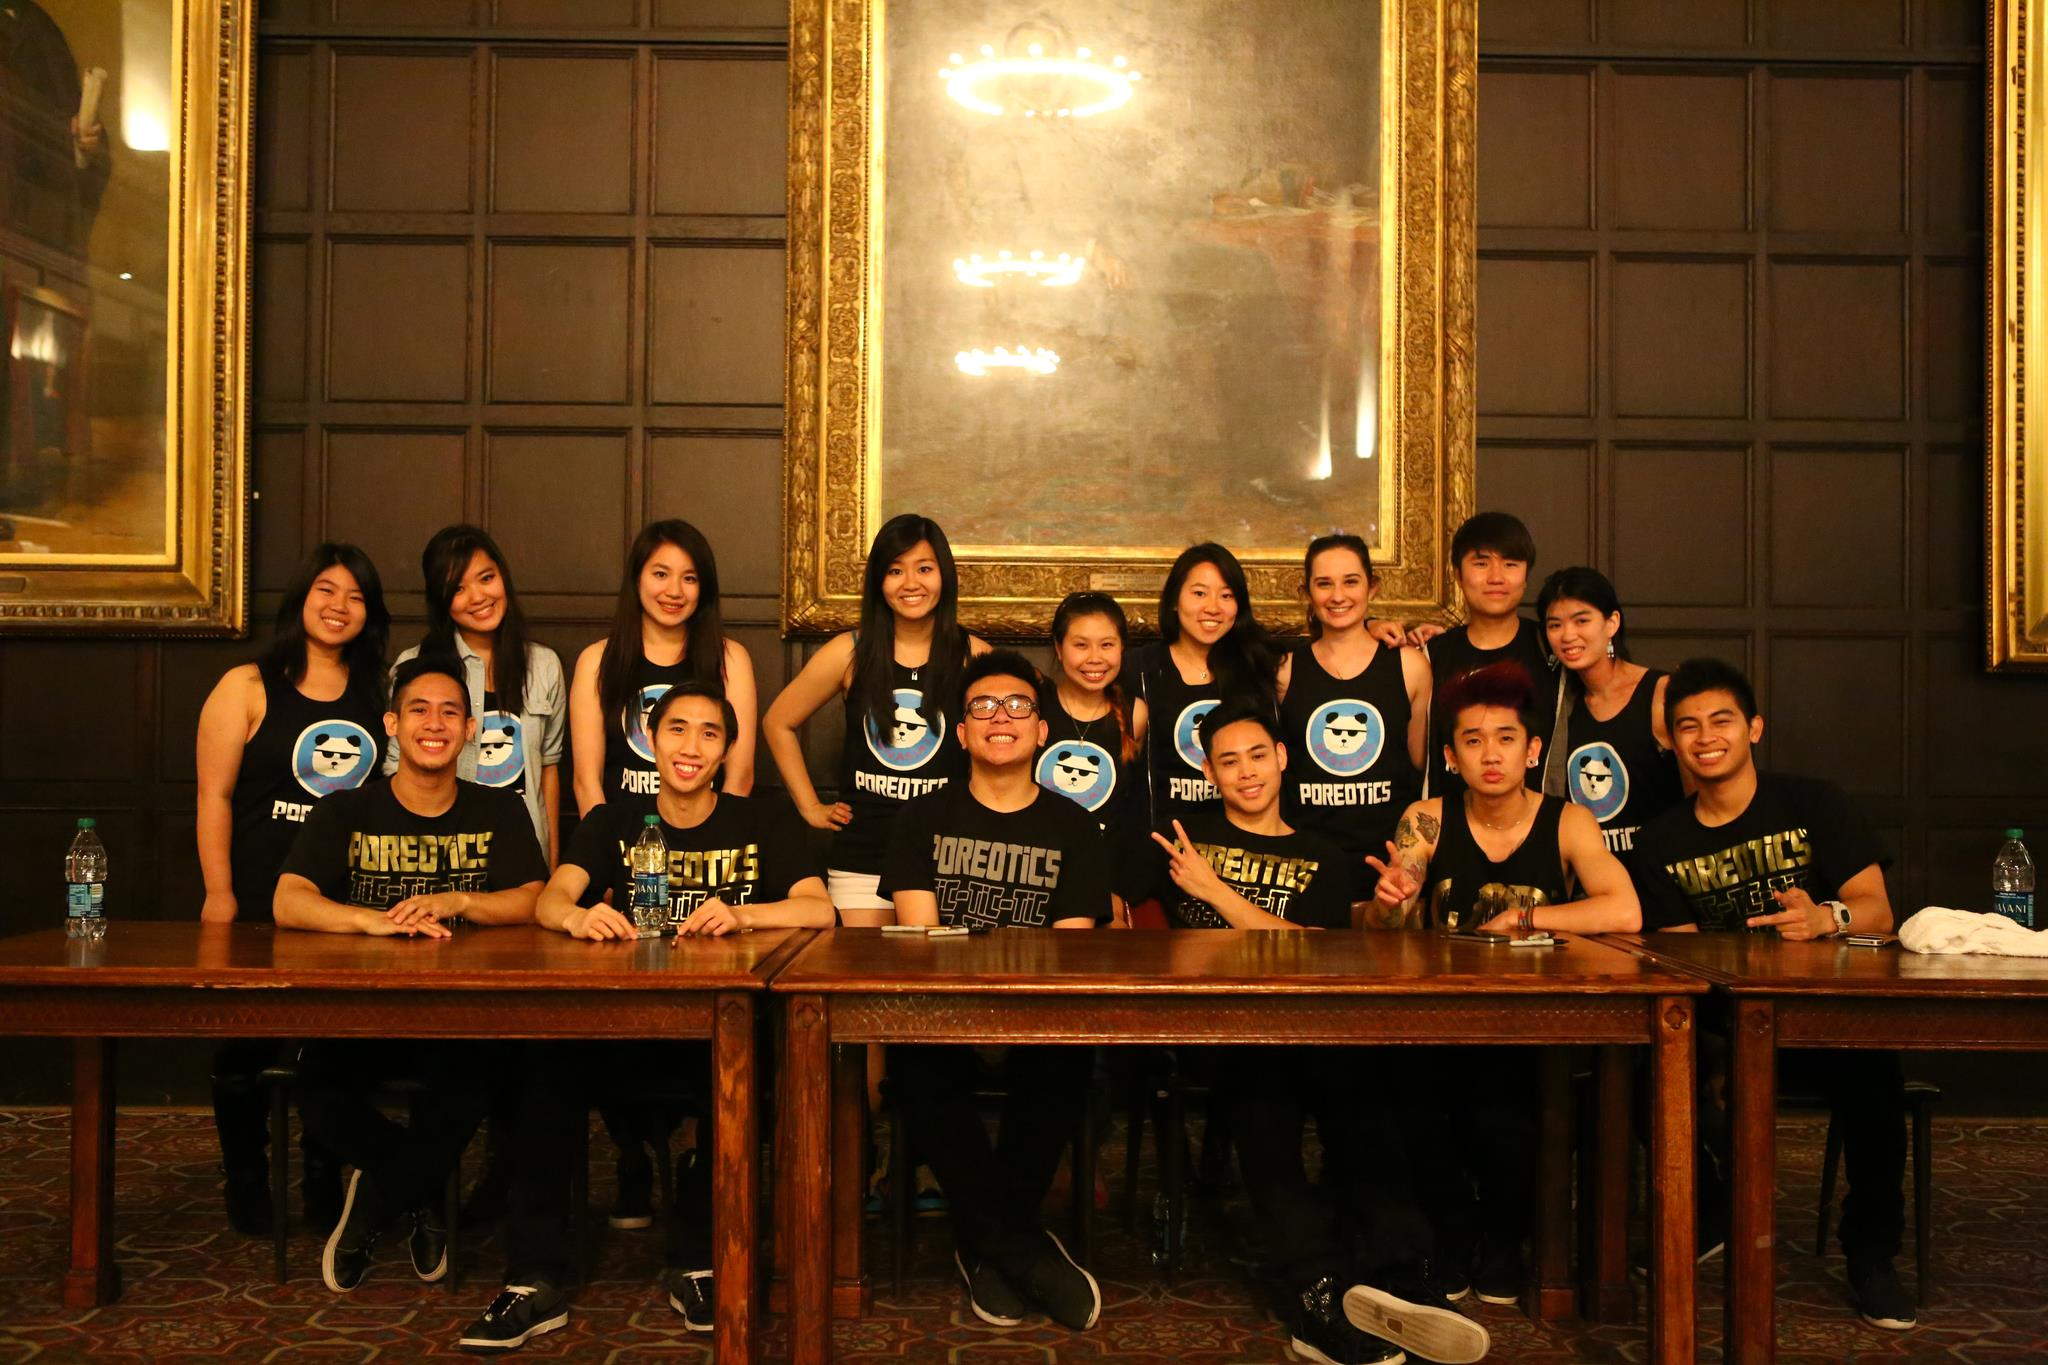 Design your own t shirt chicago - Pan Asia With Poreotics Dance Crew T Shirt Photo